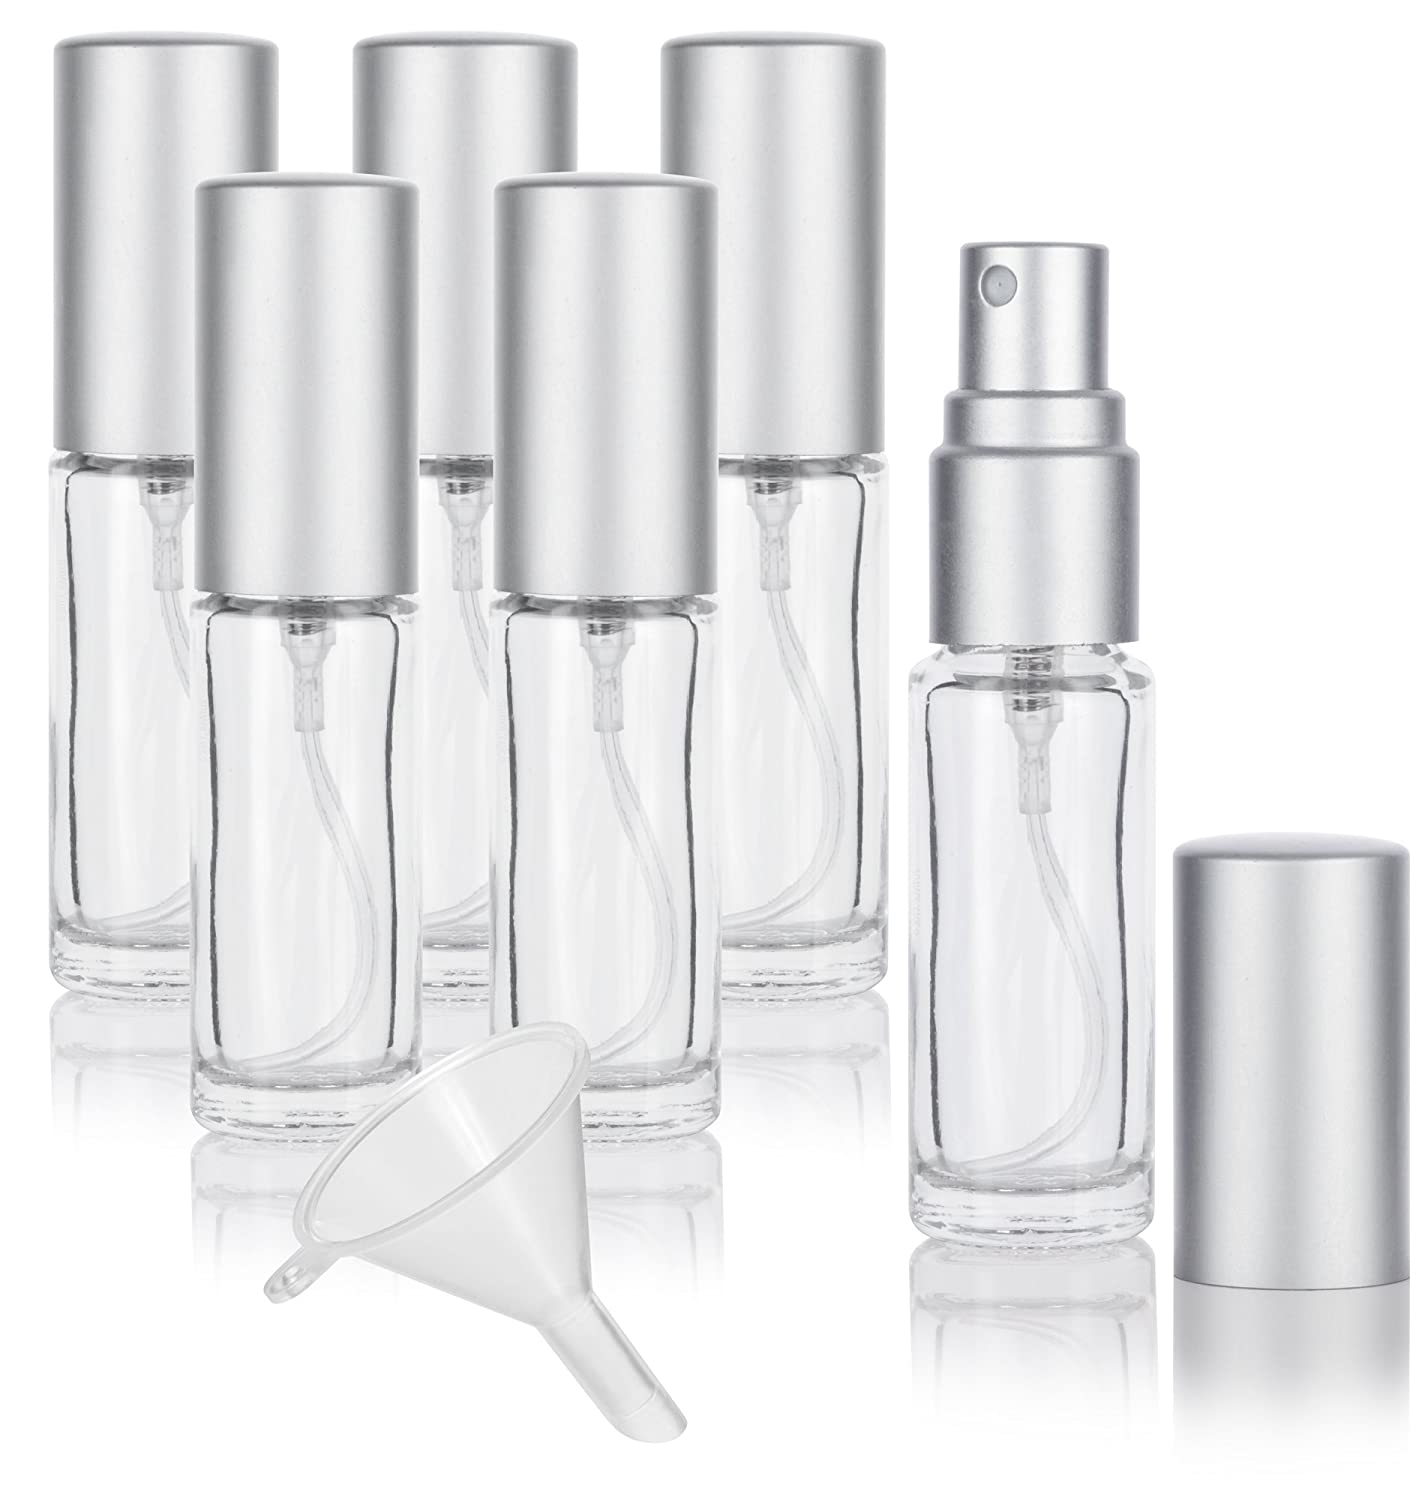 Amazon.com   Clear Glass 0.15 oz 5 ml Refillable Small Travel Perfume Spray  Bottle (6 PACK) + Funnel   Beauty e66ad6a7e14c